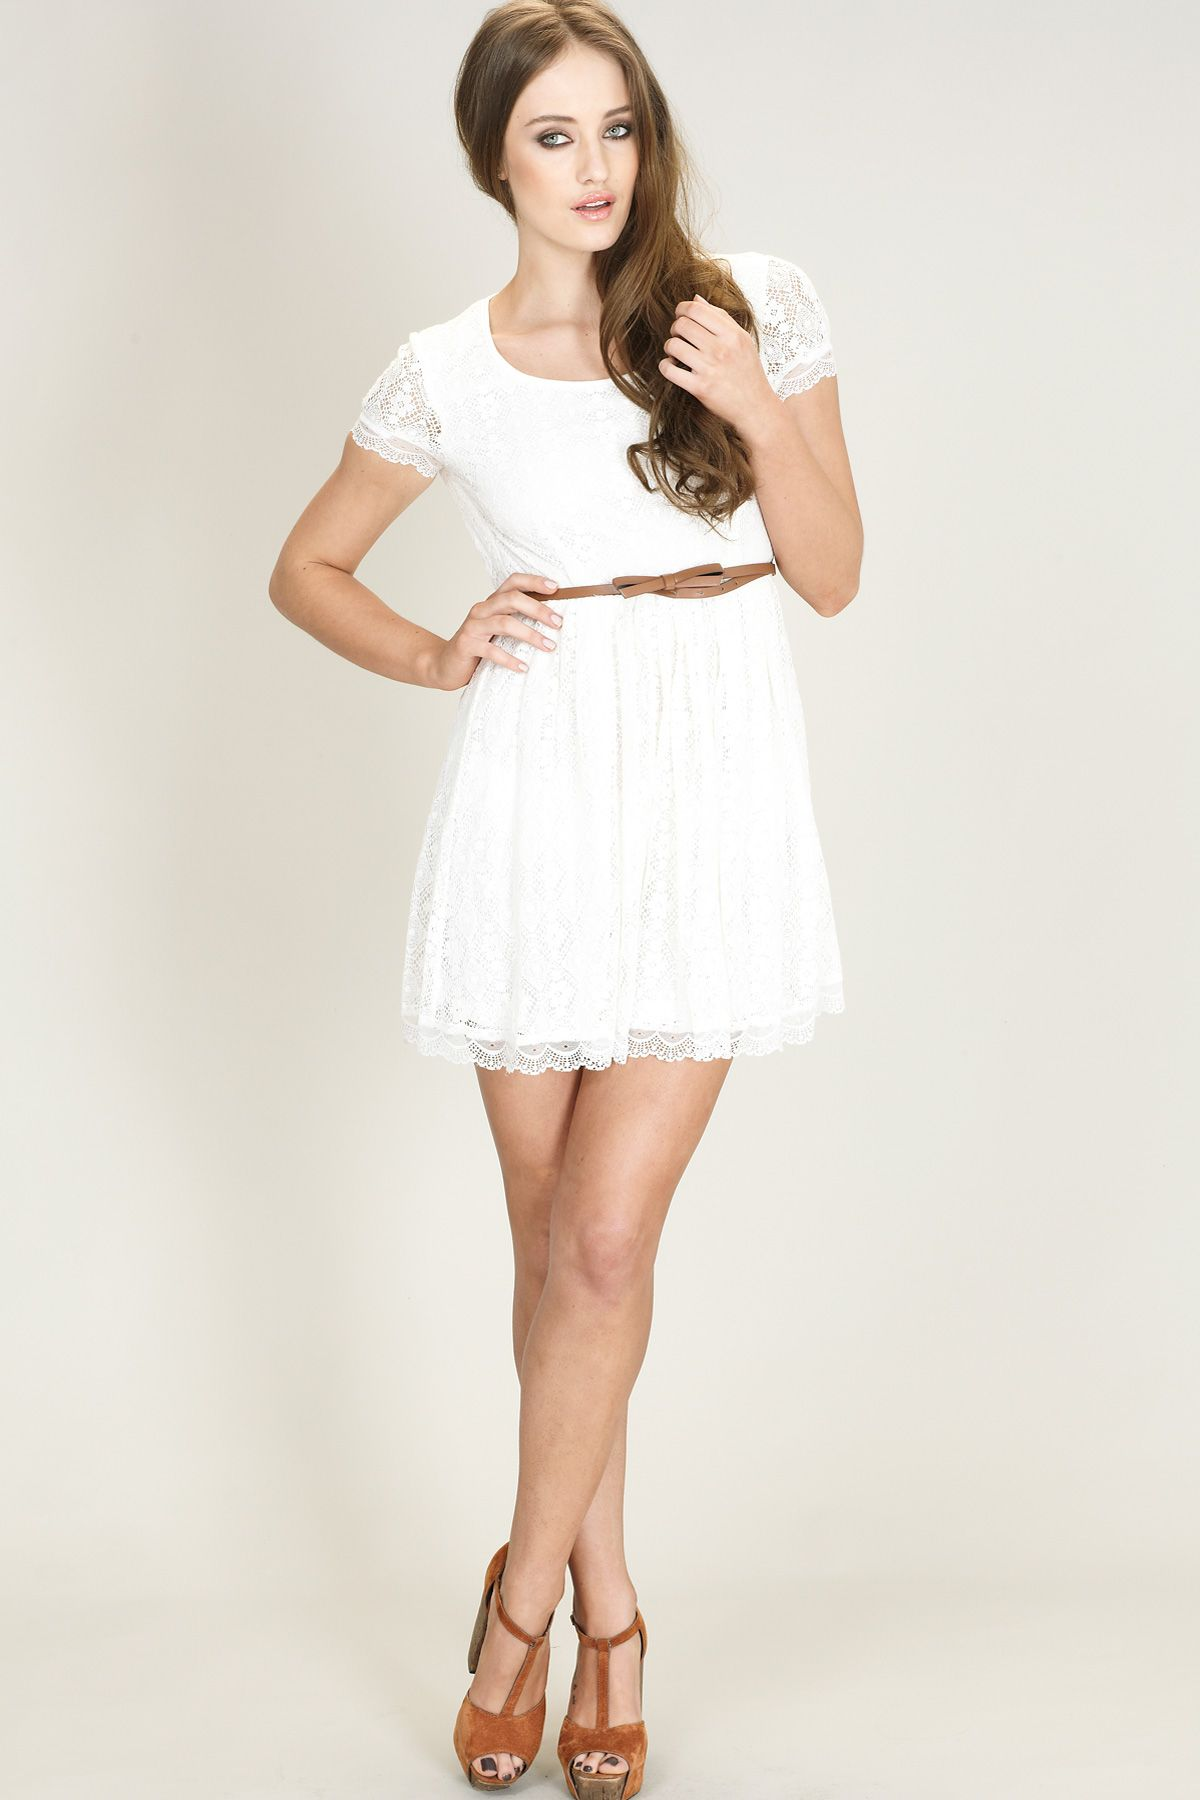 Beautiful White Dresses for Every Occasion | Summer dresses, Cream ...